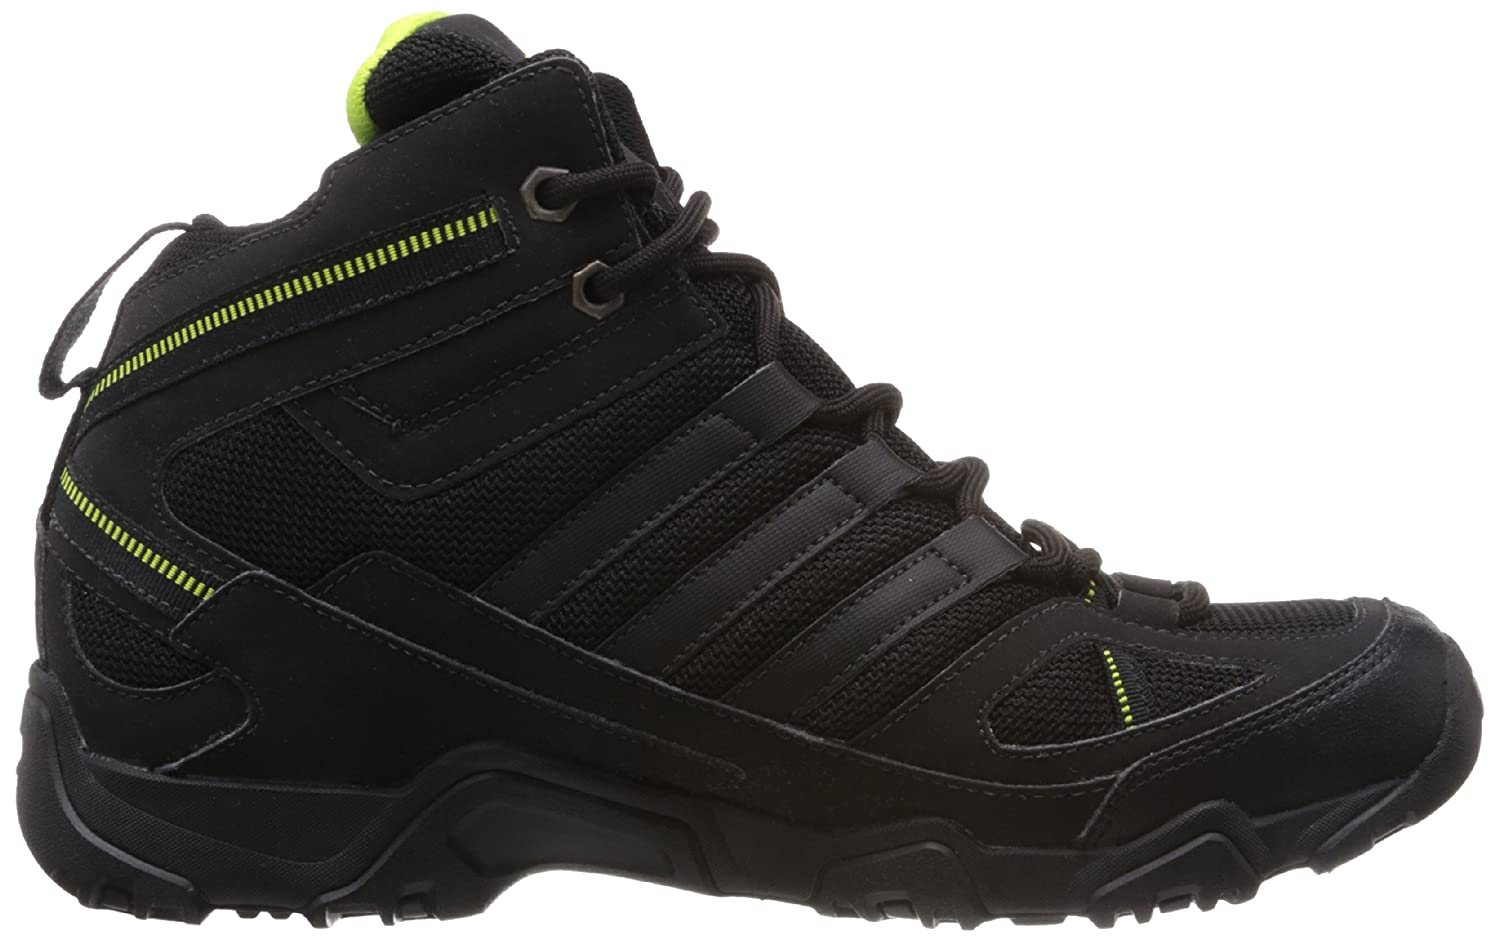 adidas Men's Xaphan Mid Black and Mid Green Mesh Trekking and Hiking Shoes  - 9 UK: Buy Online at Low Prices in India - Amazon.in